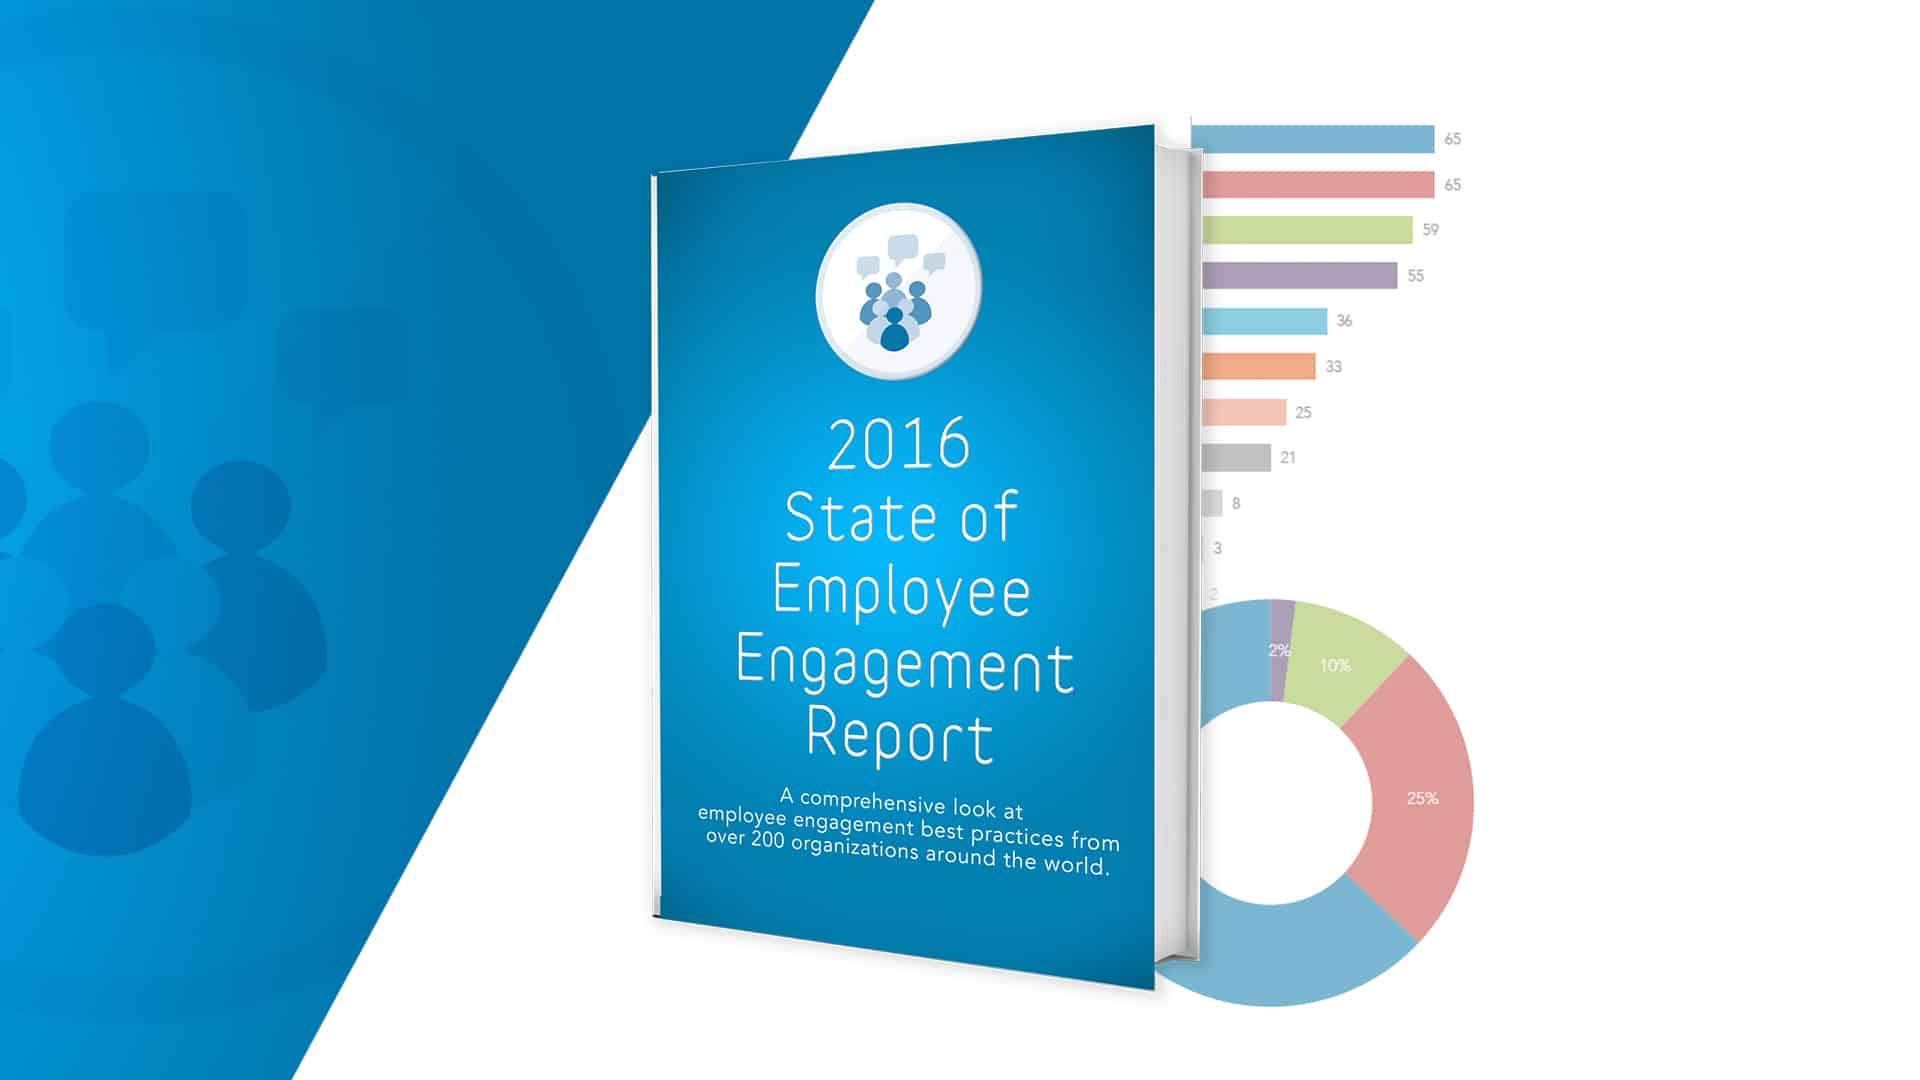 State-of-Employee-Engagement-Report